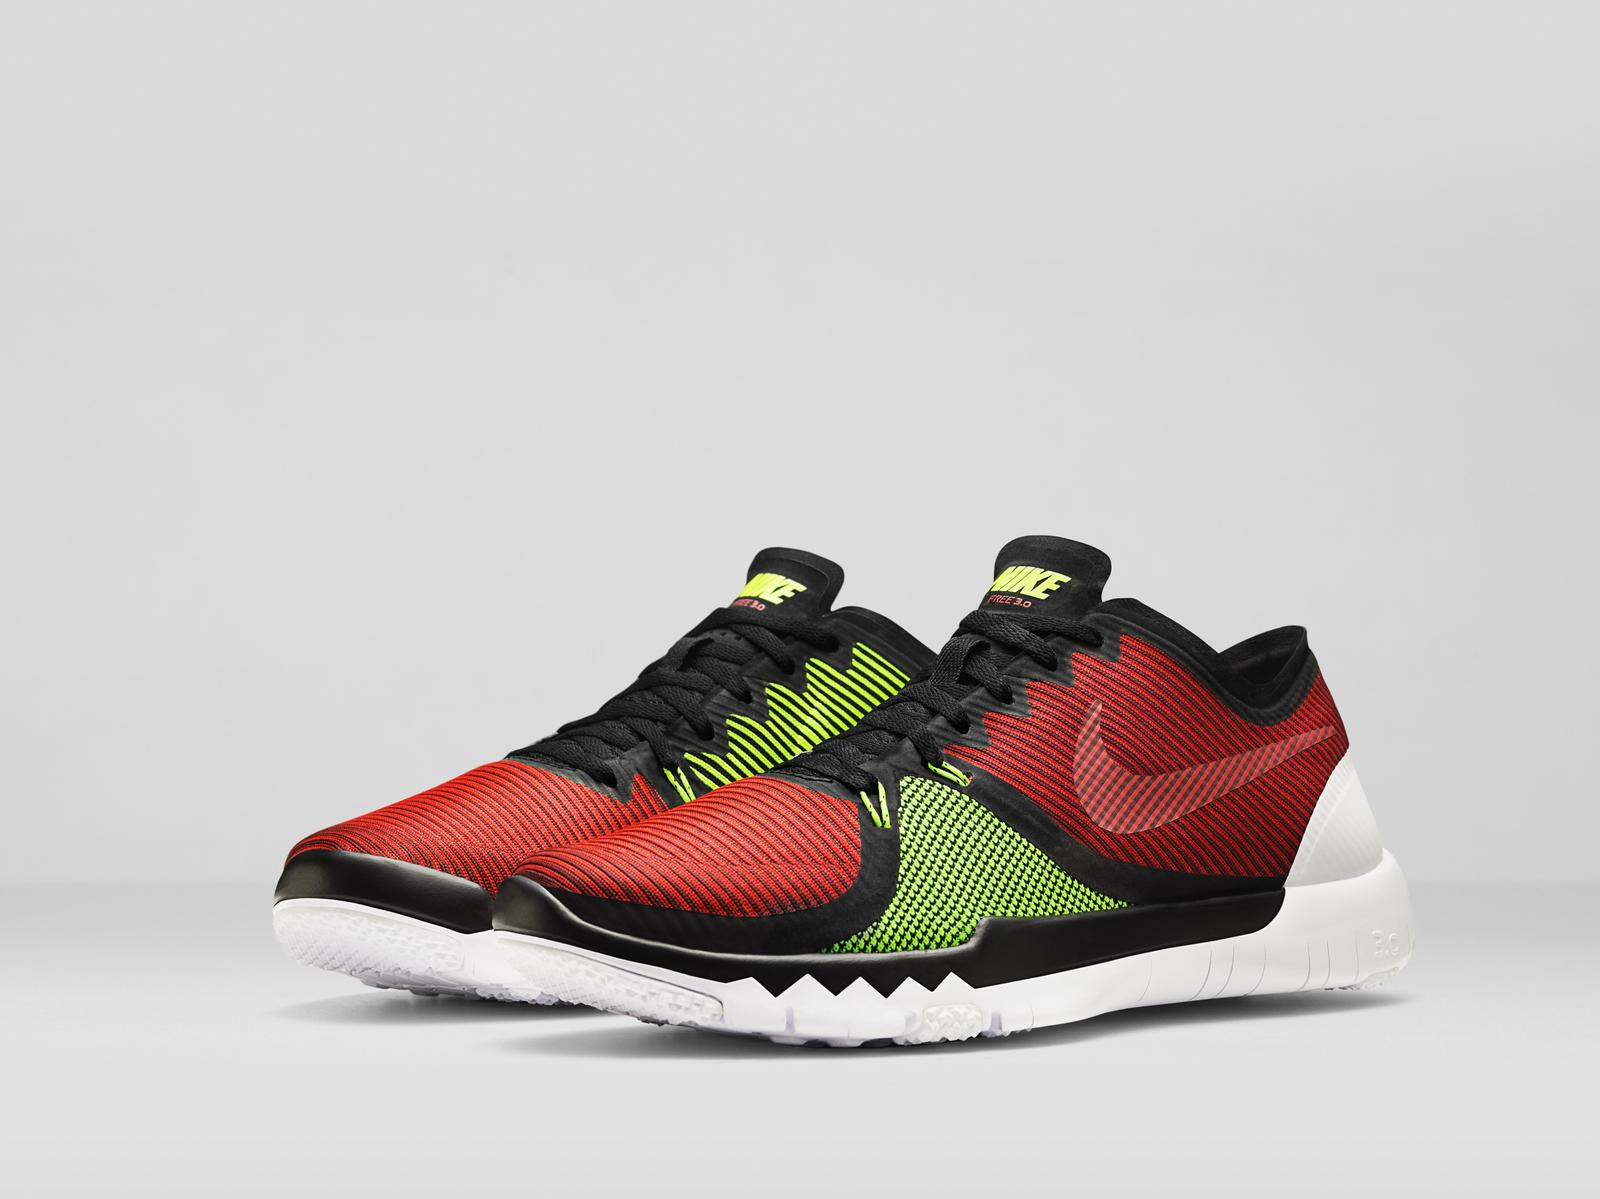 Nike Free Trainer 3.0 Provides Directional Flexibility and